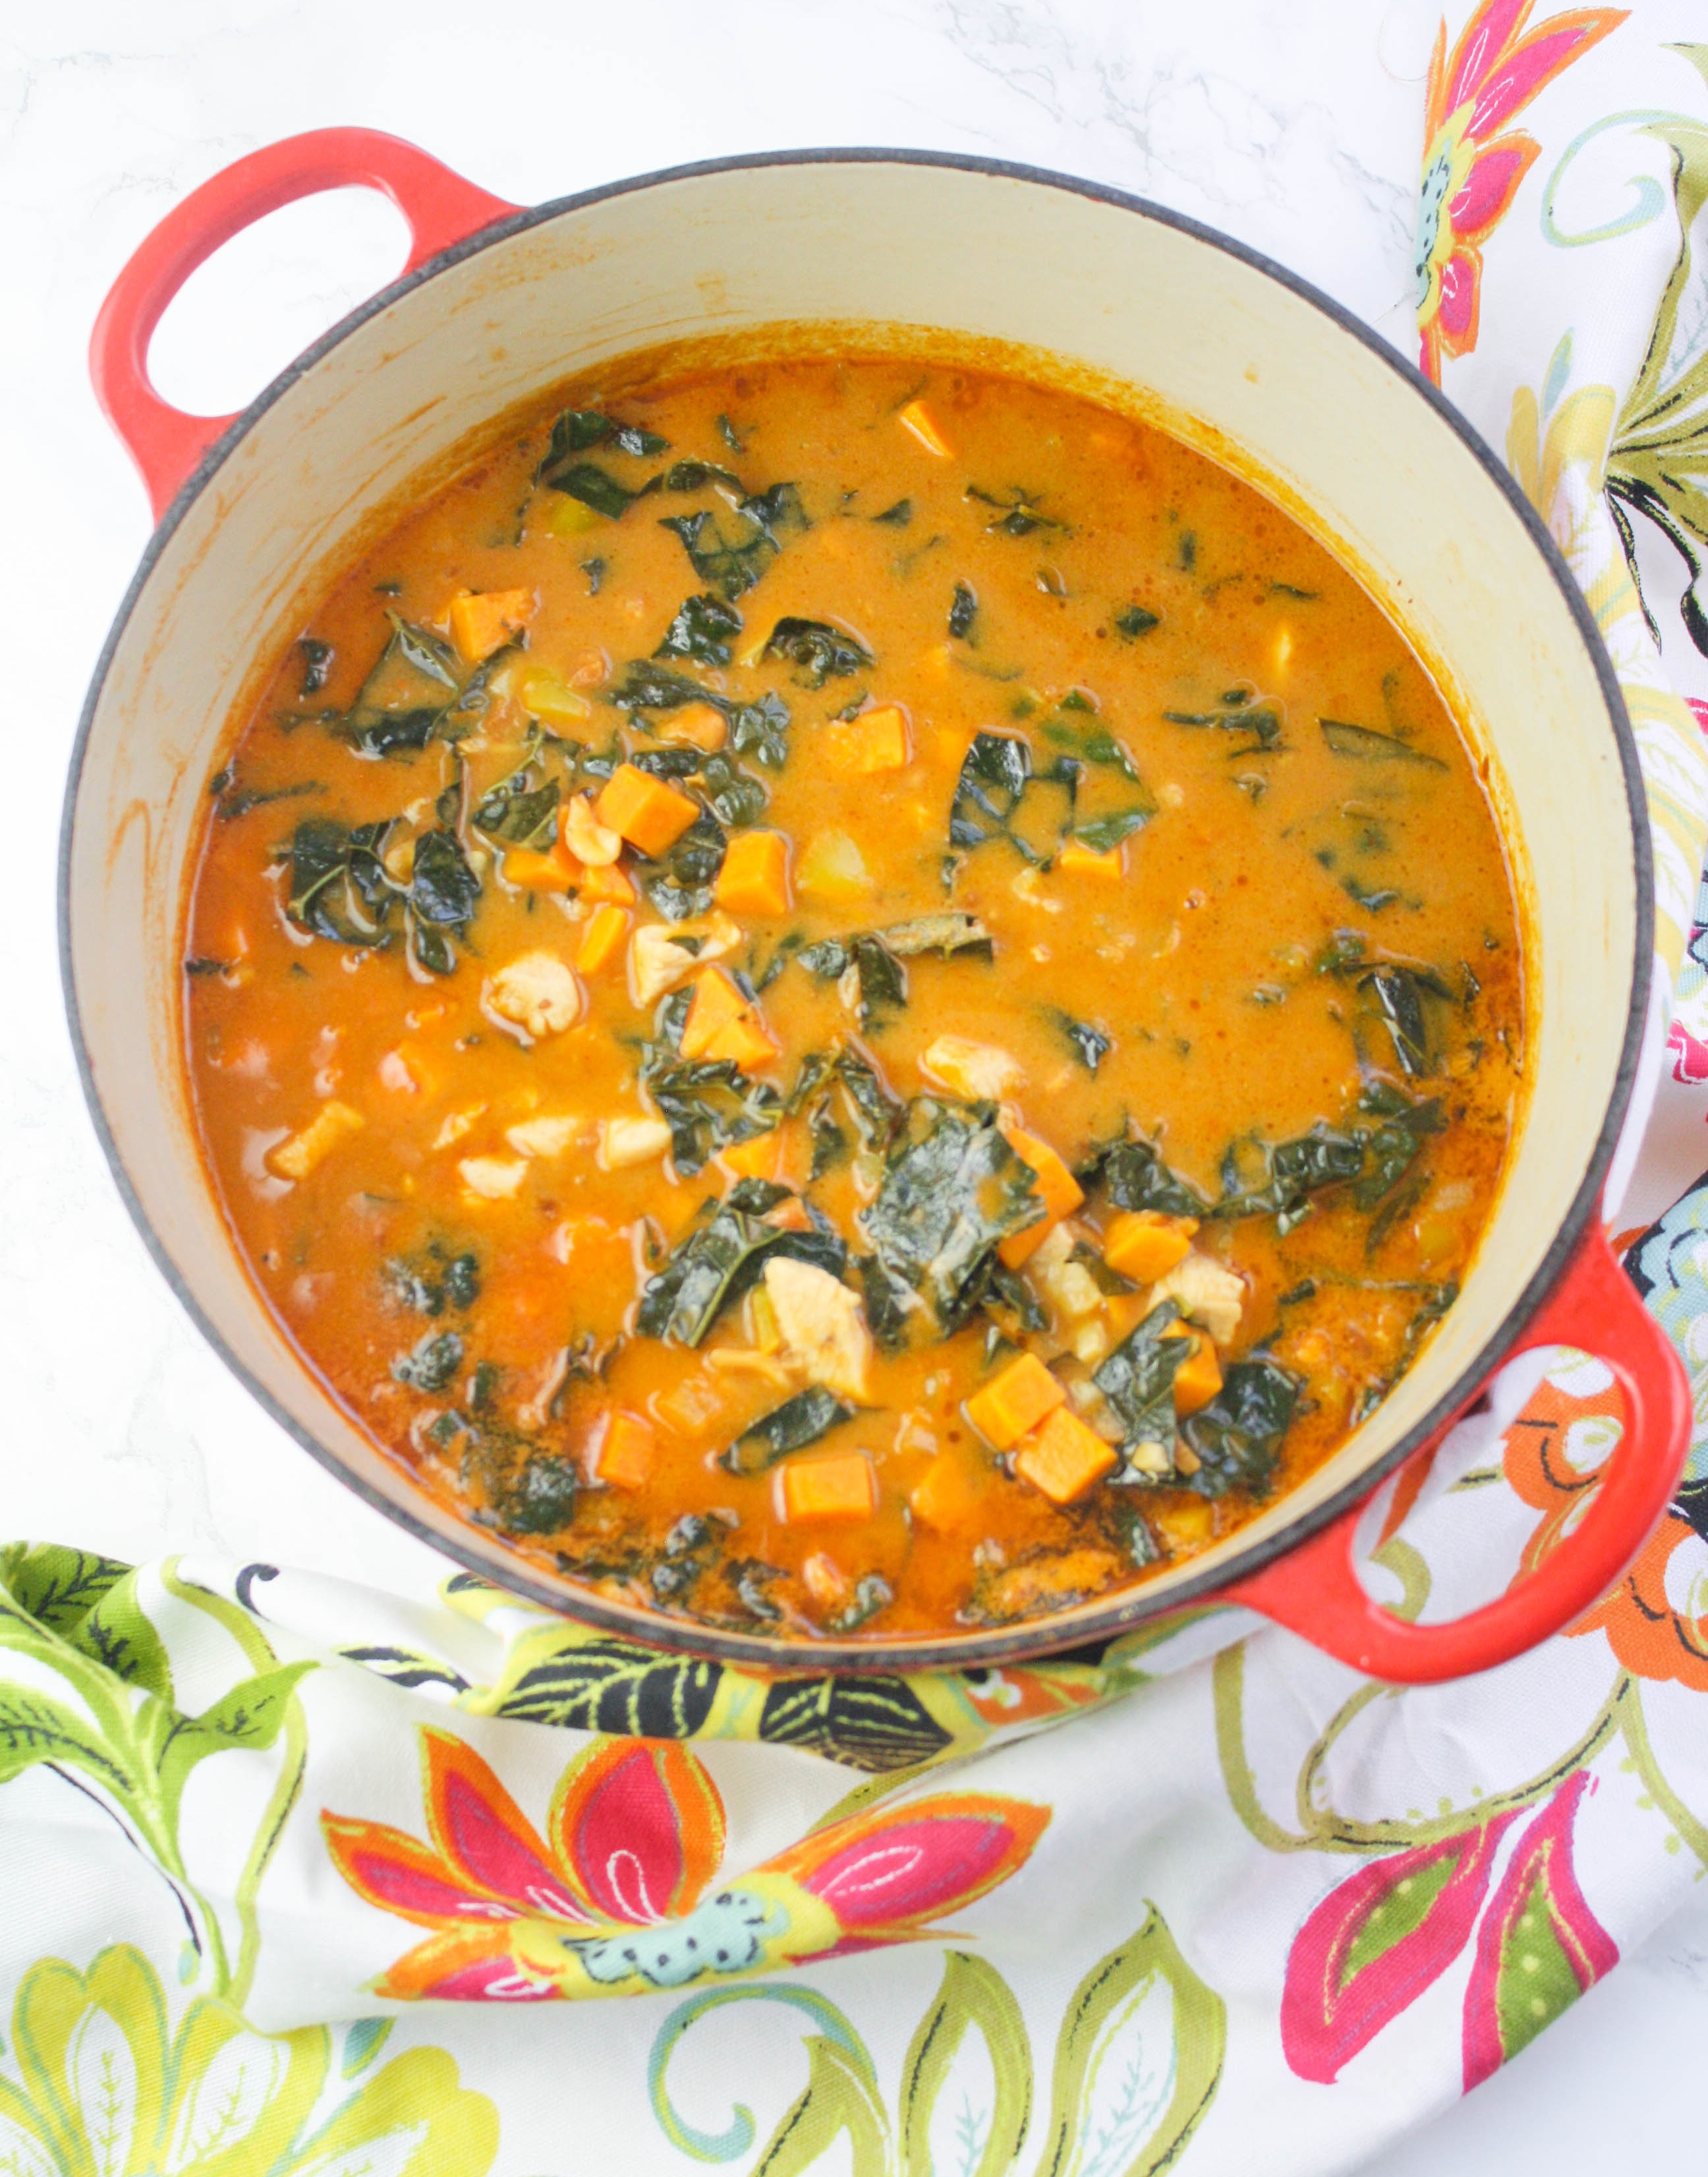 West African Peanut Stew is a delicious dish for a cold night. Grab your big pot to make a batch of West African Peanut Stew.